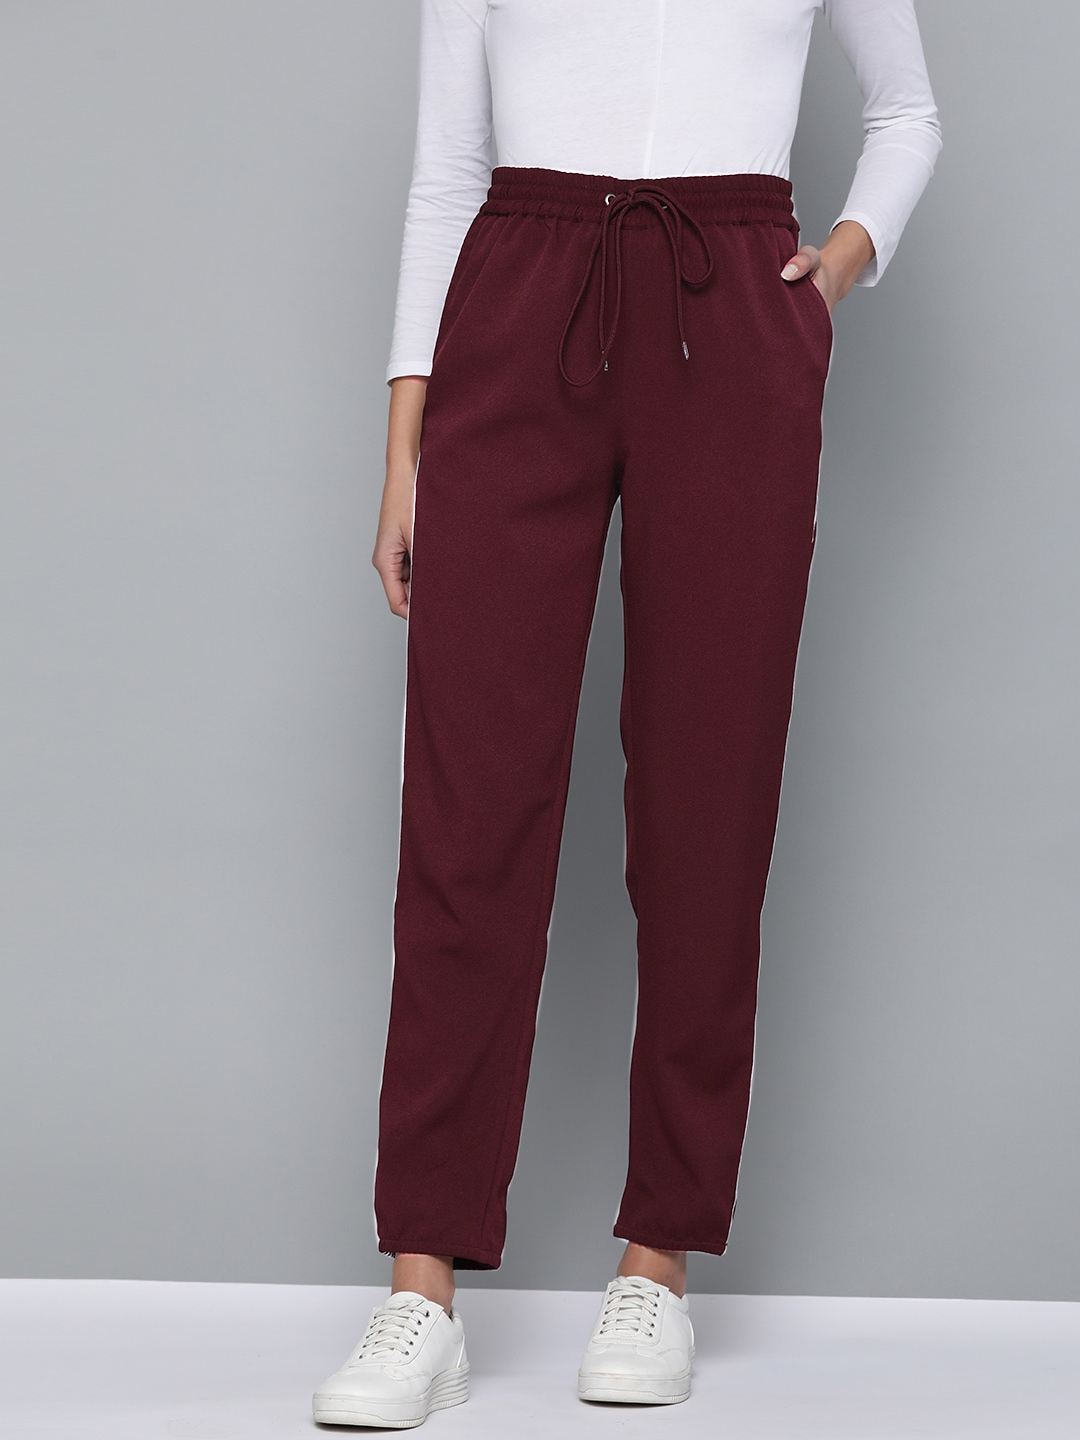 Mast  Harbour Women Maroon Solid Cropped Joggers-13097002